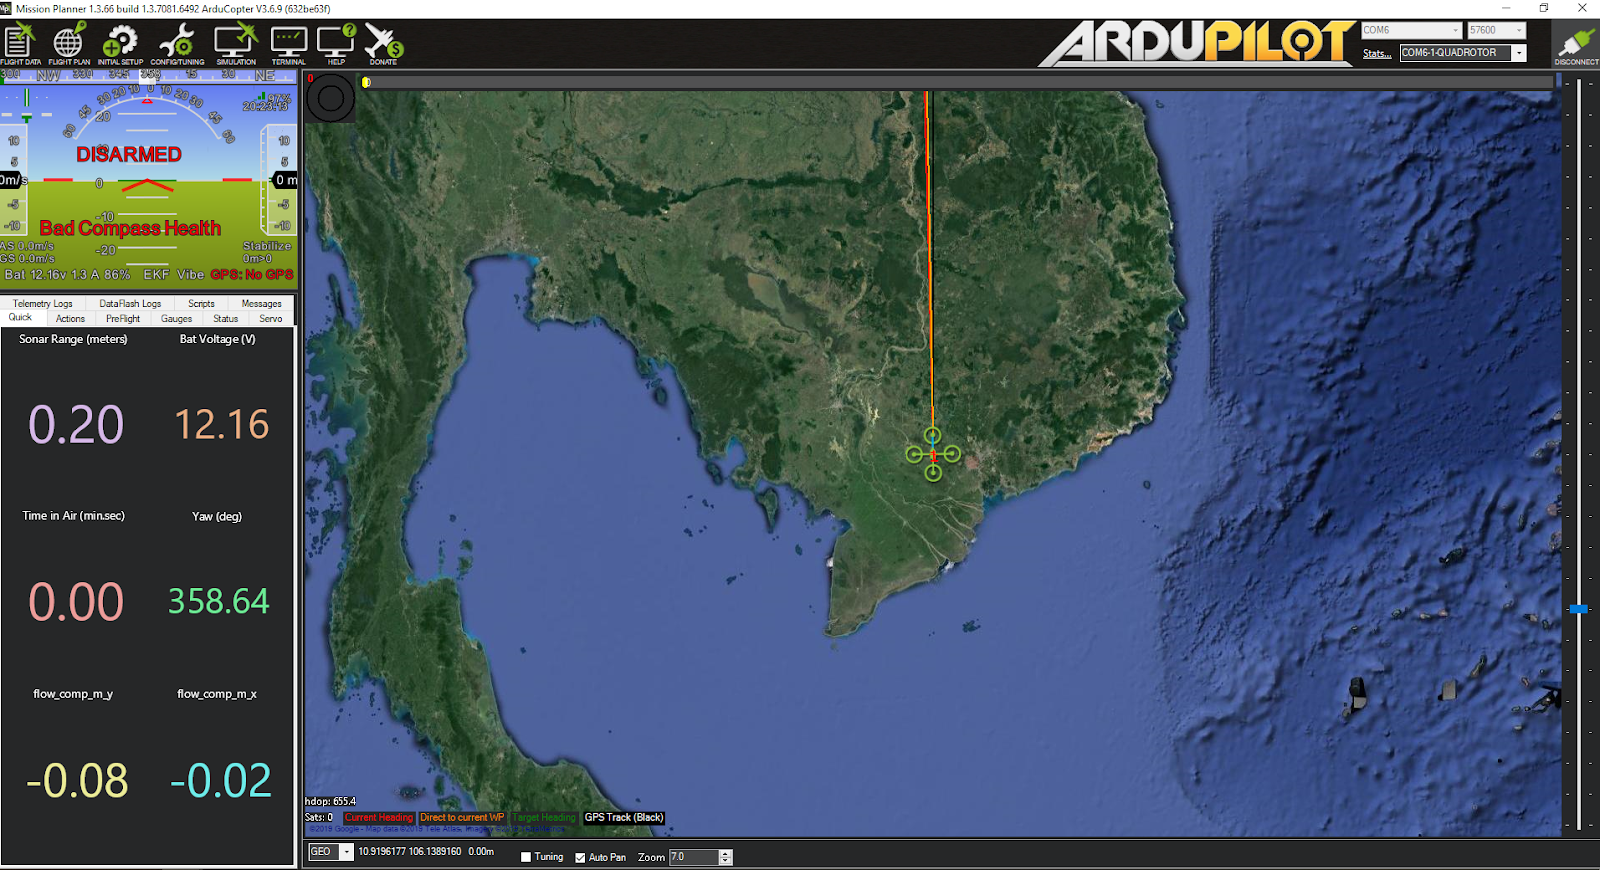 Integration of ArduPilot and VIO tracking camera (Part 2): Complete